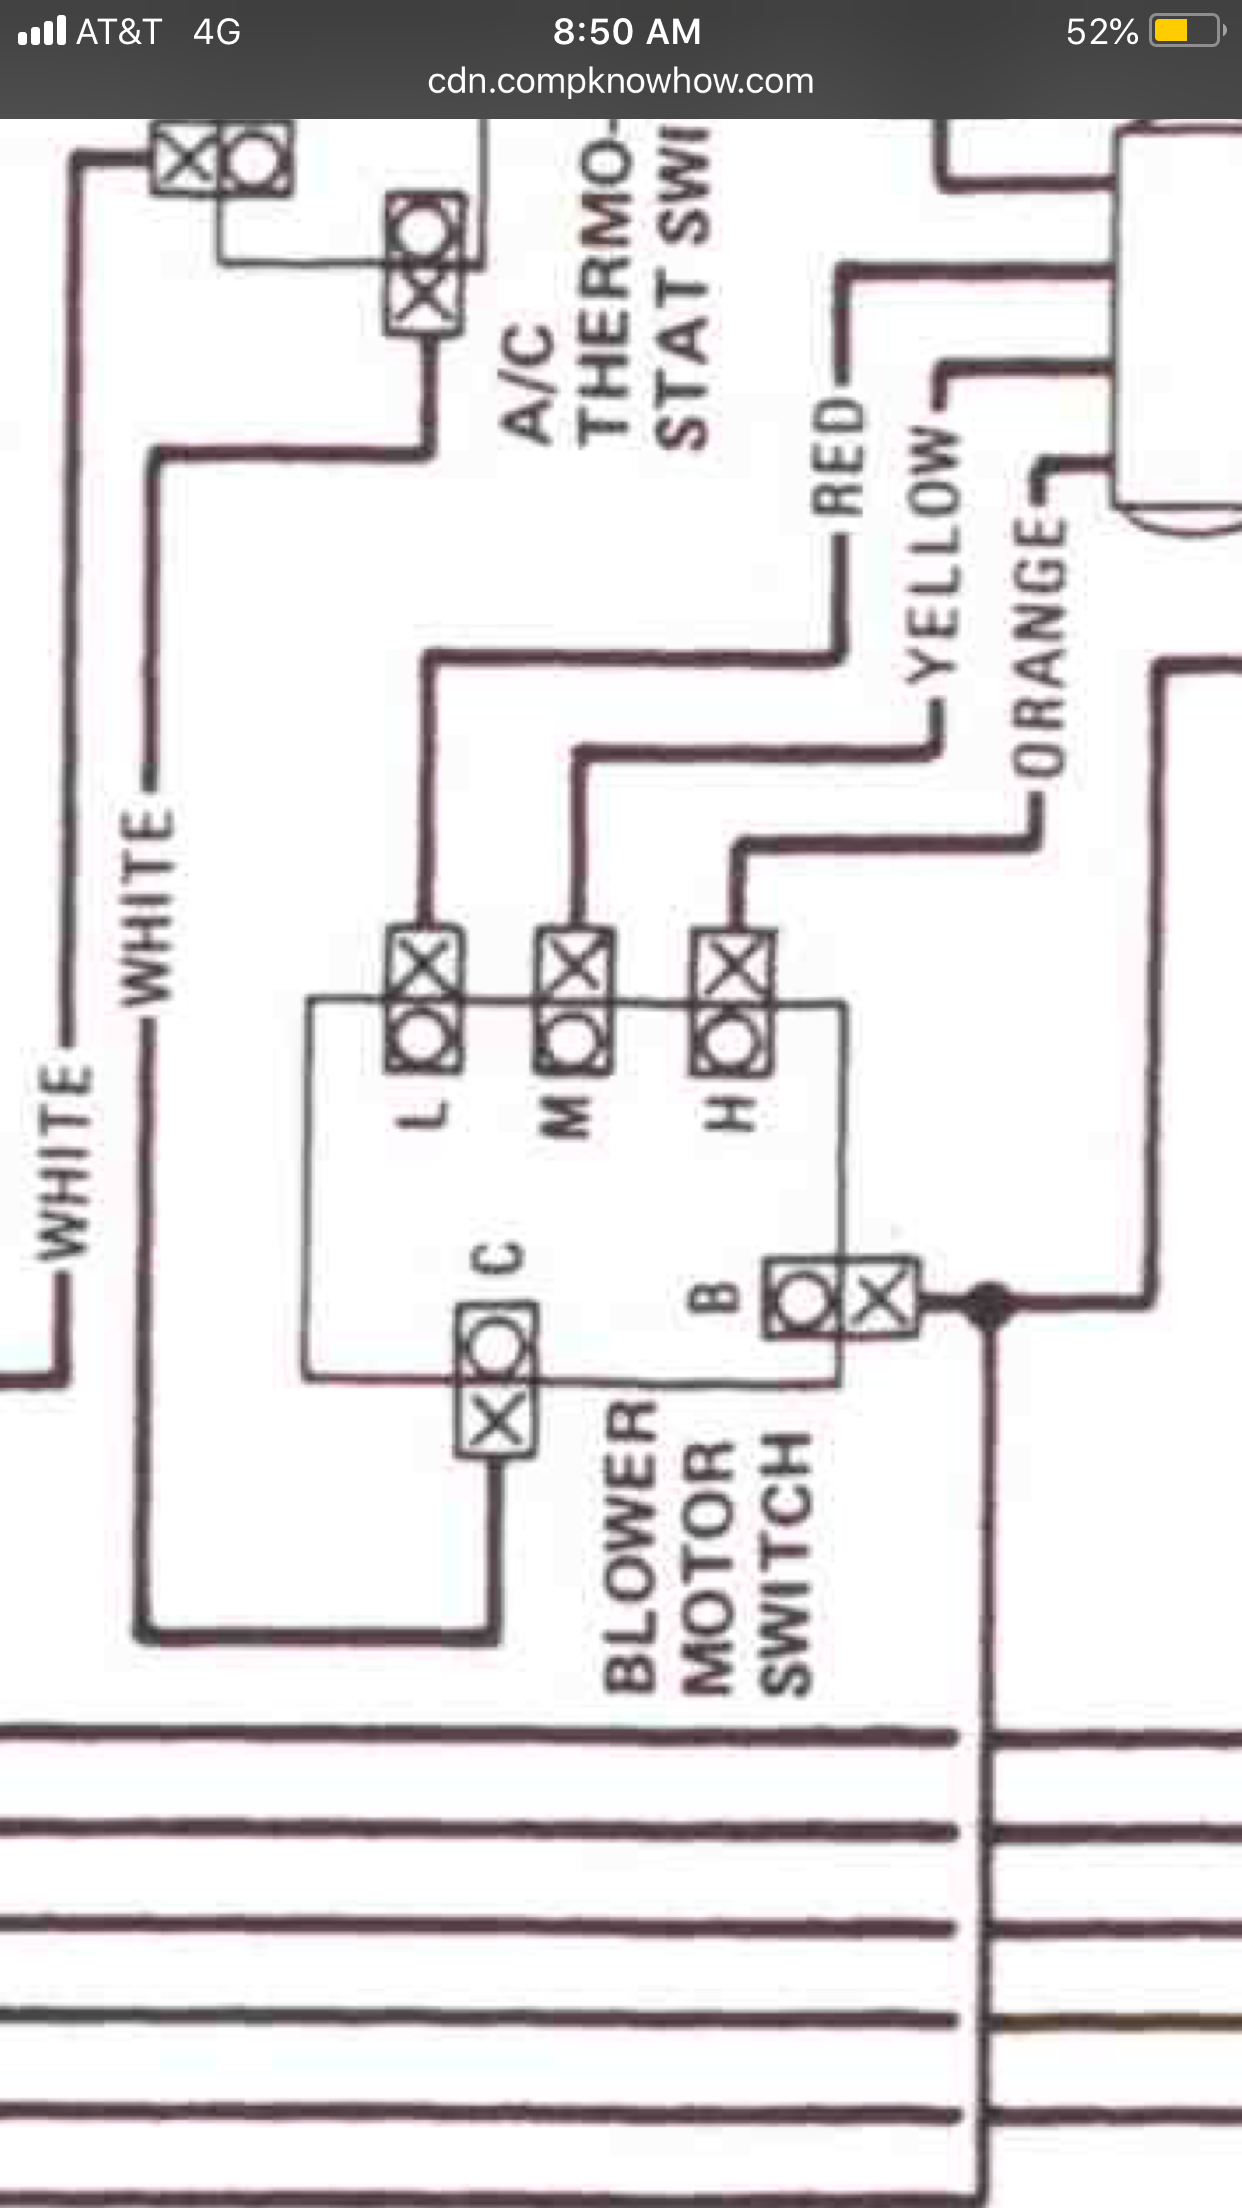 1086 Ih Cab Wiring Diagram | Wiring Diagram Ih Wiring Diagram on ih 1466 exhaust, ford dexta wiring diagram, jd 4010 wiring diagram, ih 1466 cooling system, jd 3010 wiring diagram, ih 1466 tractor, jd 4455 wiring diagram, ih 1466 radio, ford naa wiring diagram, jd 4430 wiring diagram, jd 4020 wiring diagram, jd 4320 wiring diagram, mf 245 wiring diagram, jd 7520 wiring diagram, ford 3000 wiring diagram, ih 1466 power, ih 1466 brochure, ford 8340 wiring diagram,